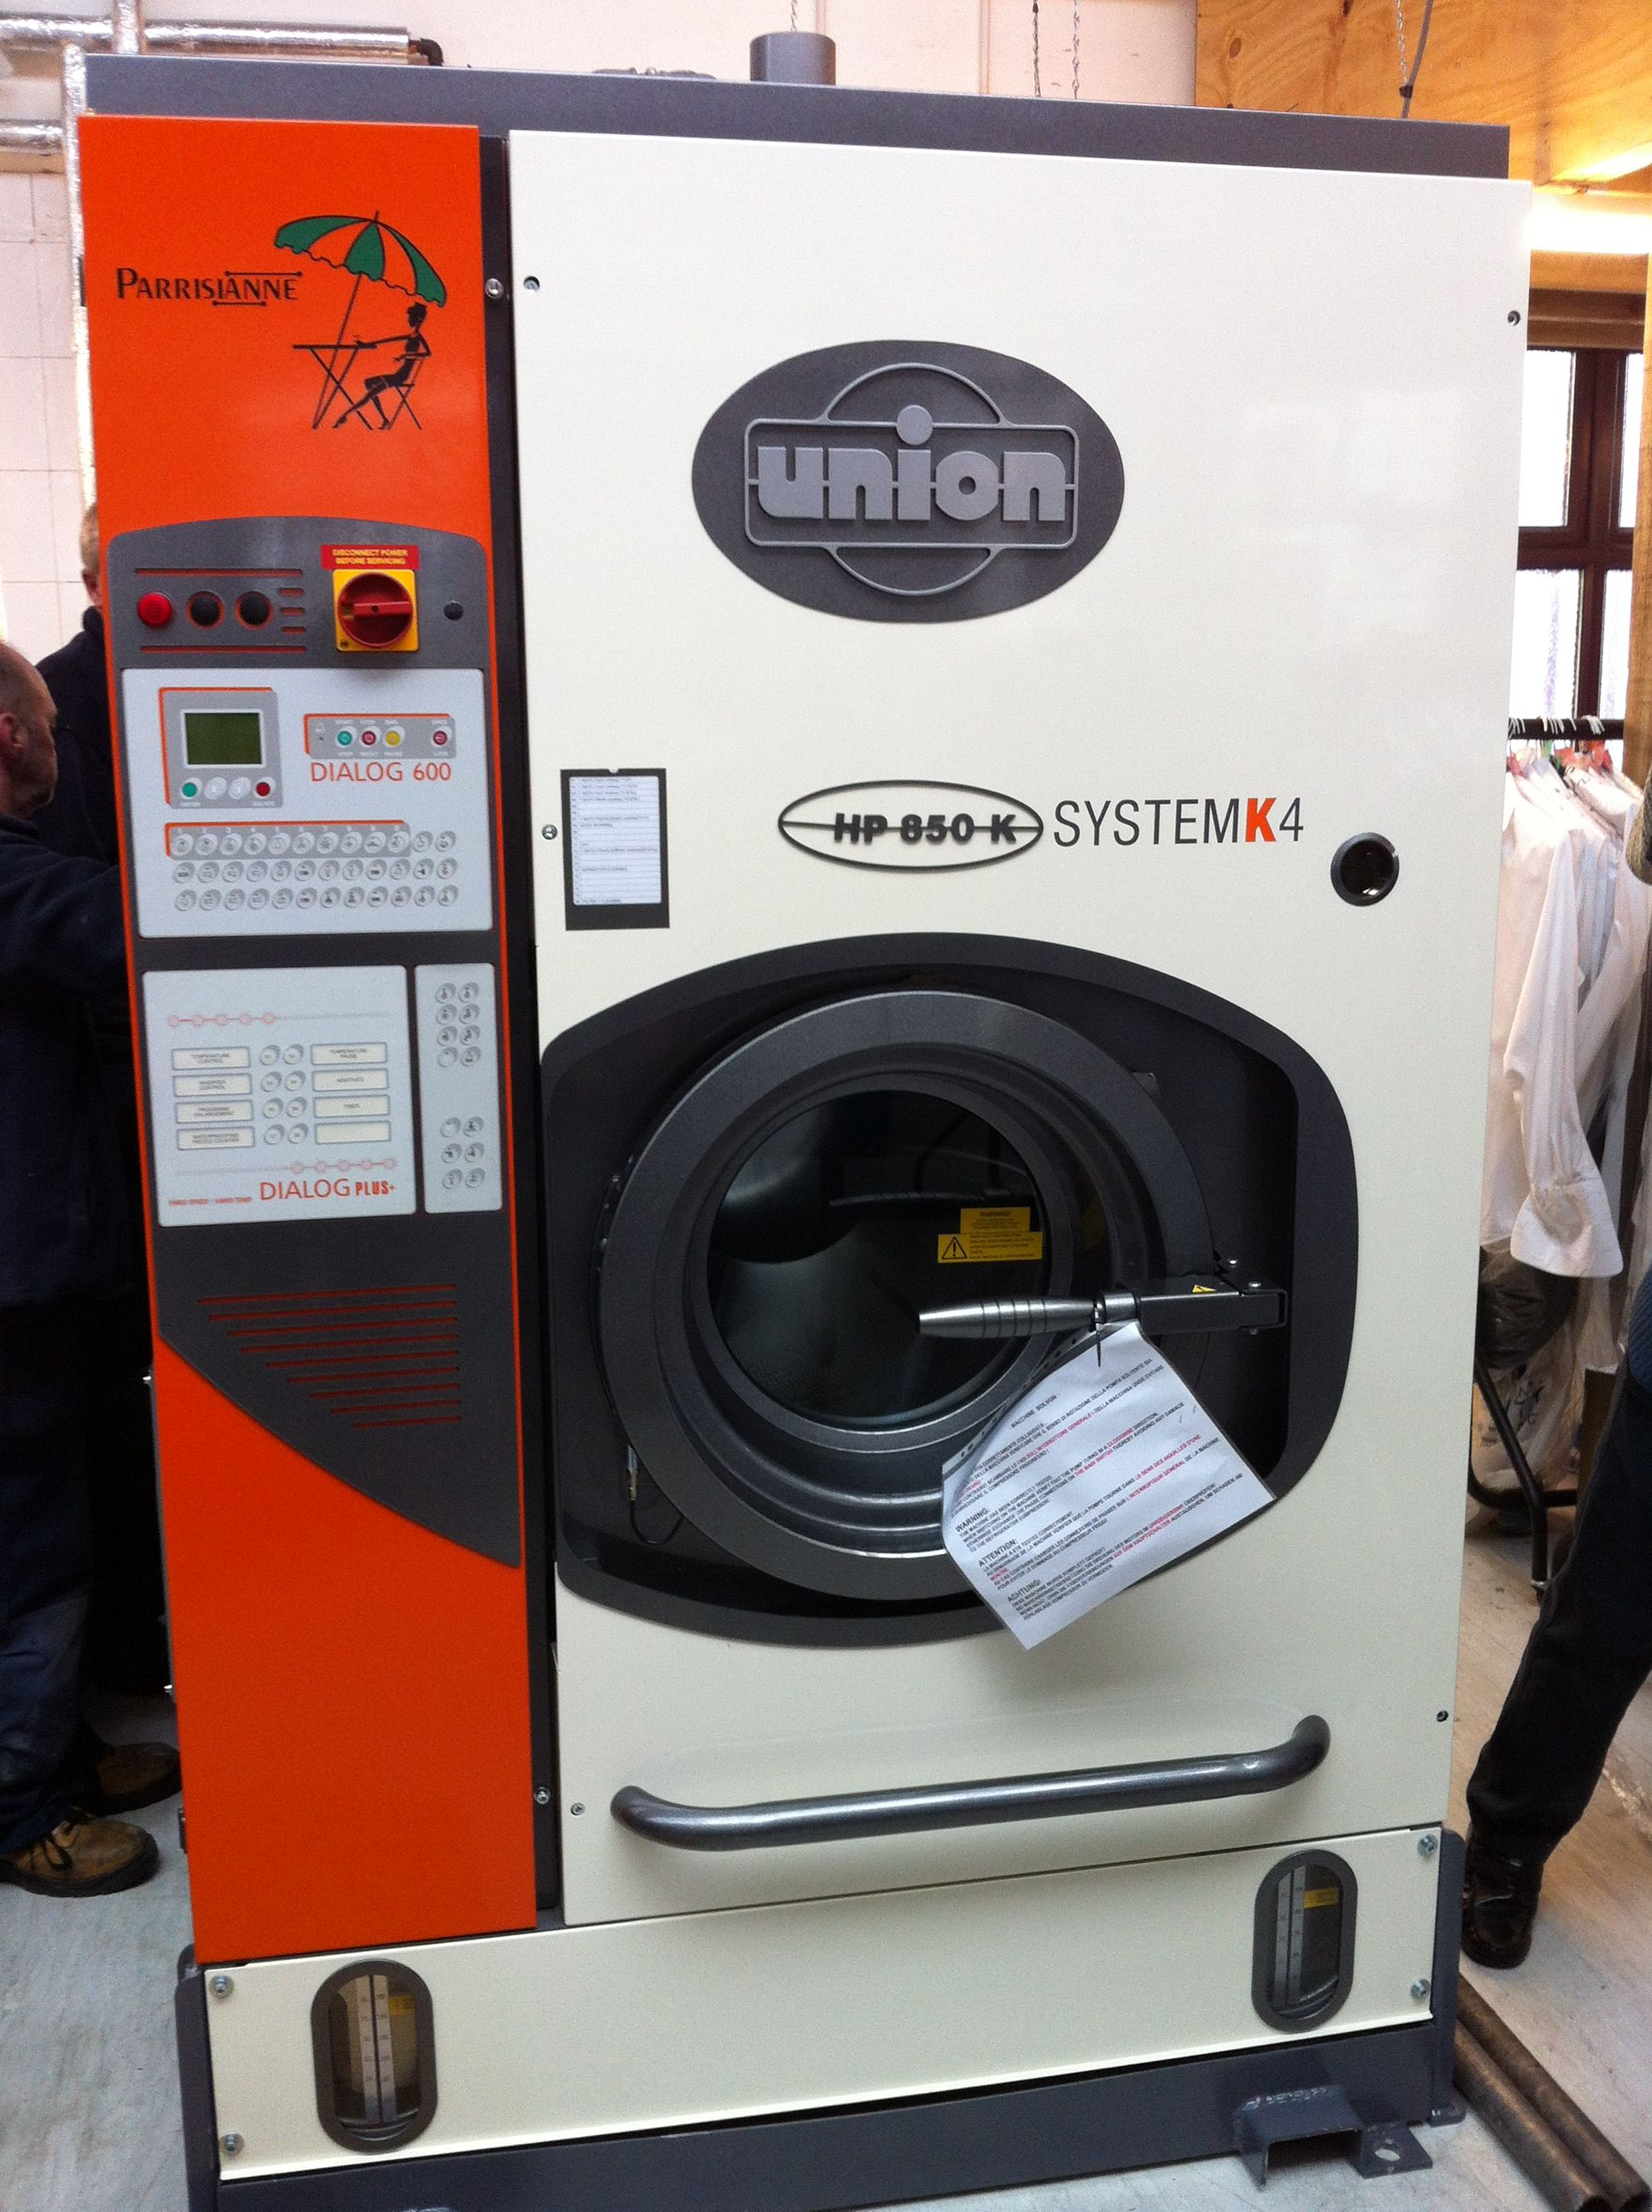 Union Multisolvent K-Series, alternative solvent dry cleaning machine, Solvon K4 dry cleaning